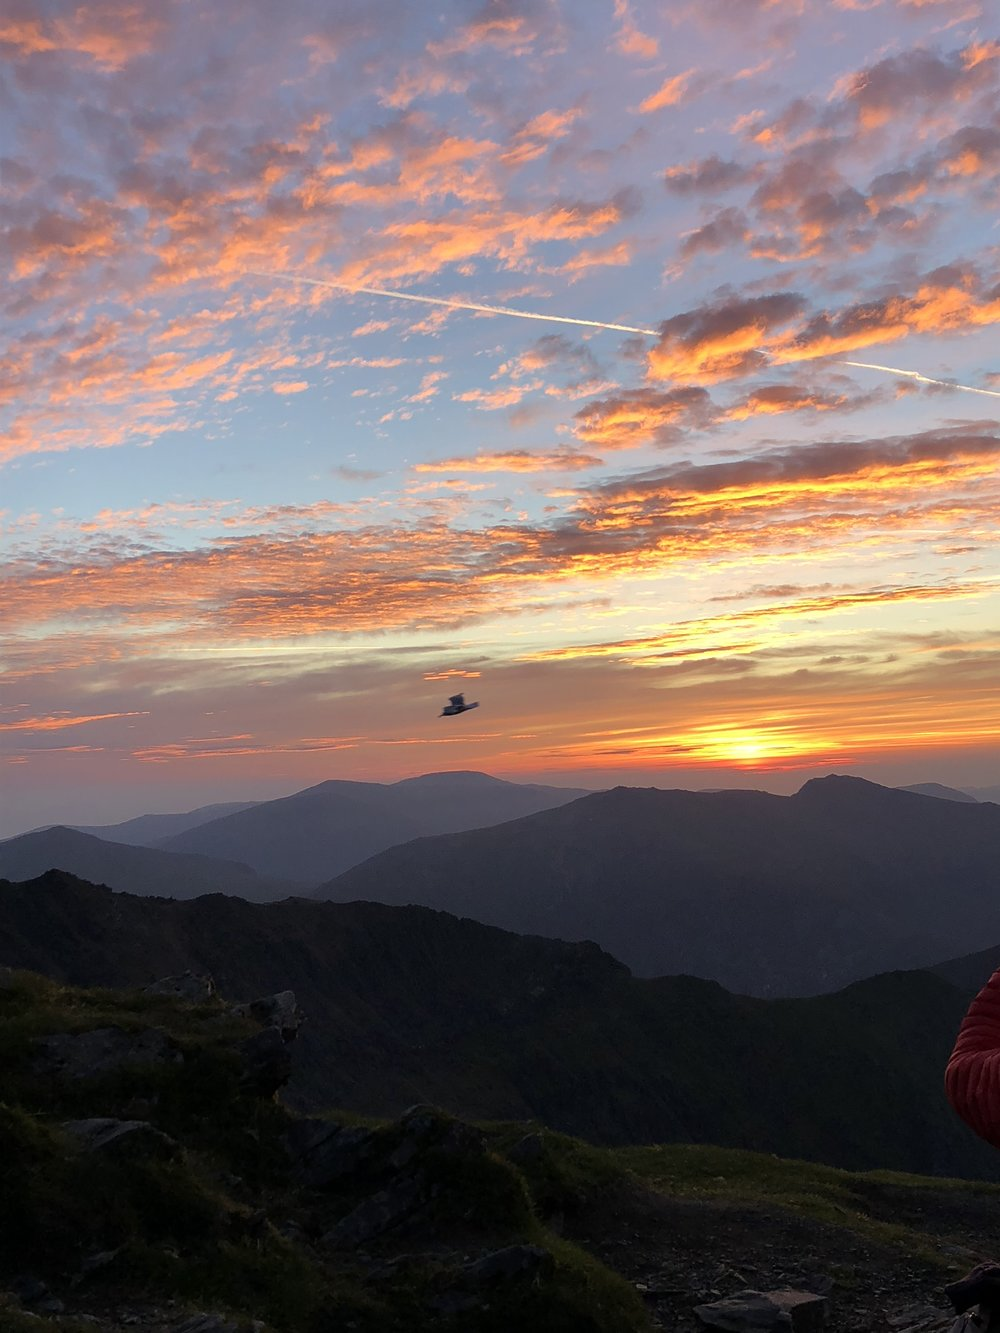 This post is all about how my friends and I challenged ourselves to walk up Snowdon through the night. Read about how it changed us for the better.